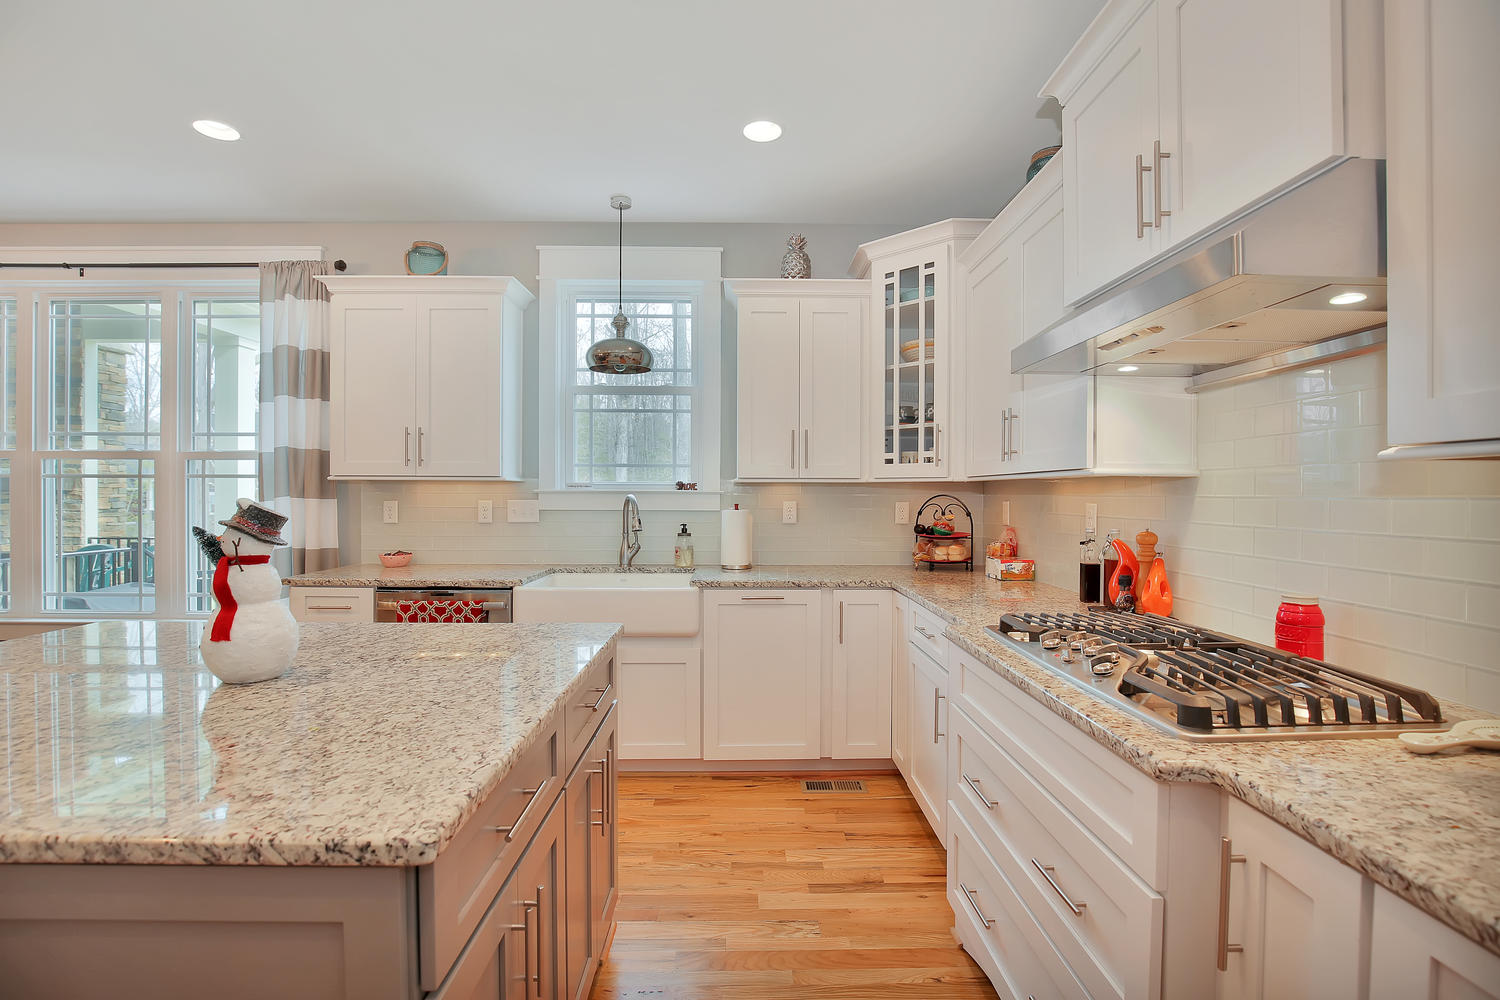 7813-rock-cress-dr-moseley-va-large-011-1-kitchen-1500x1000-72dpi